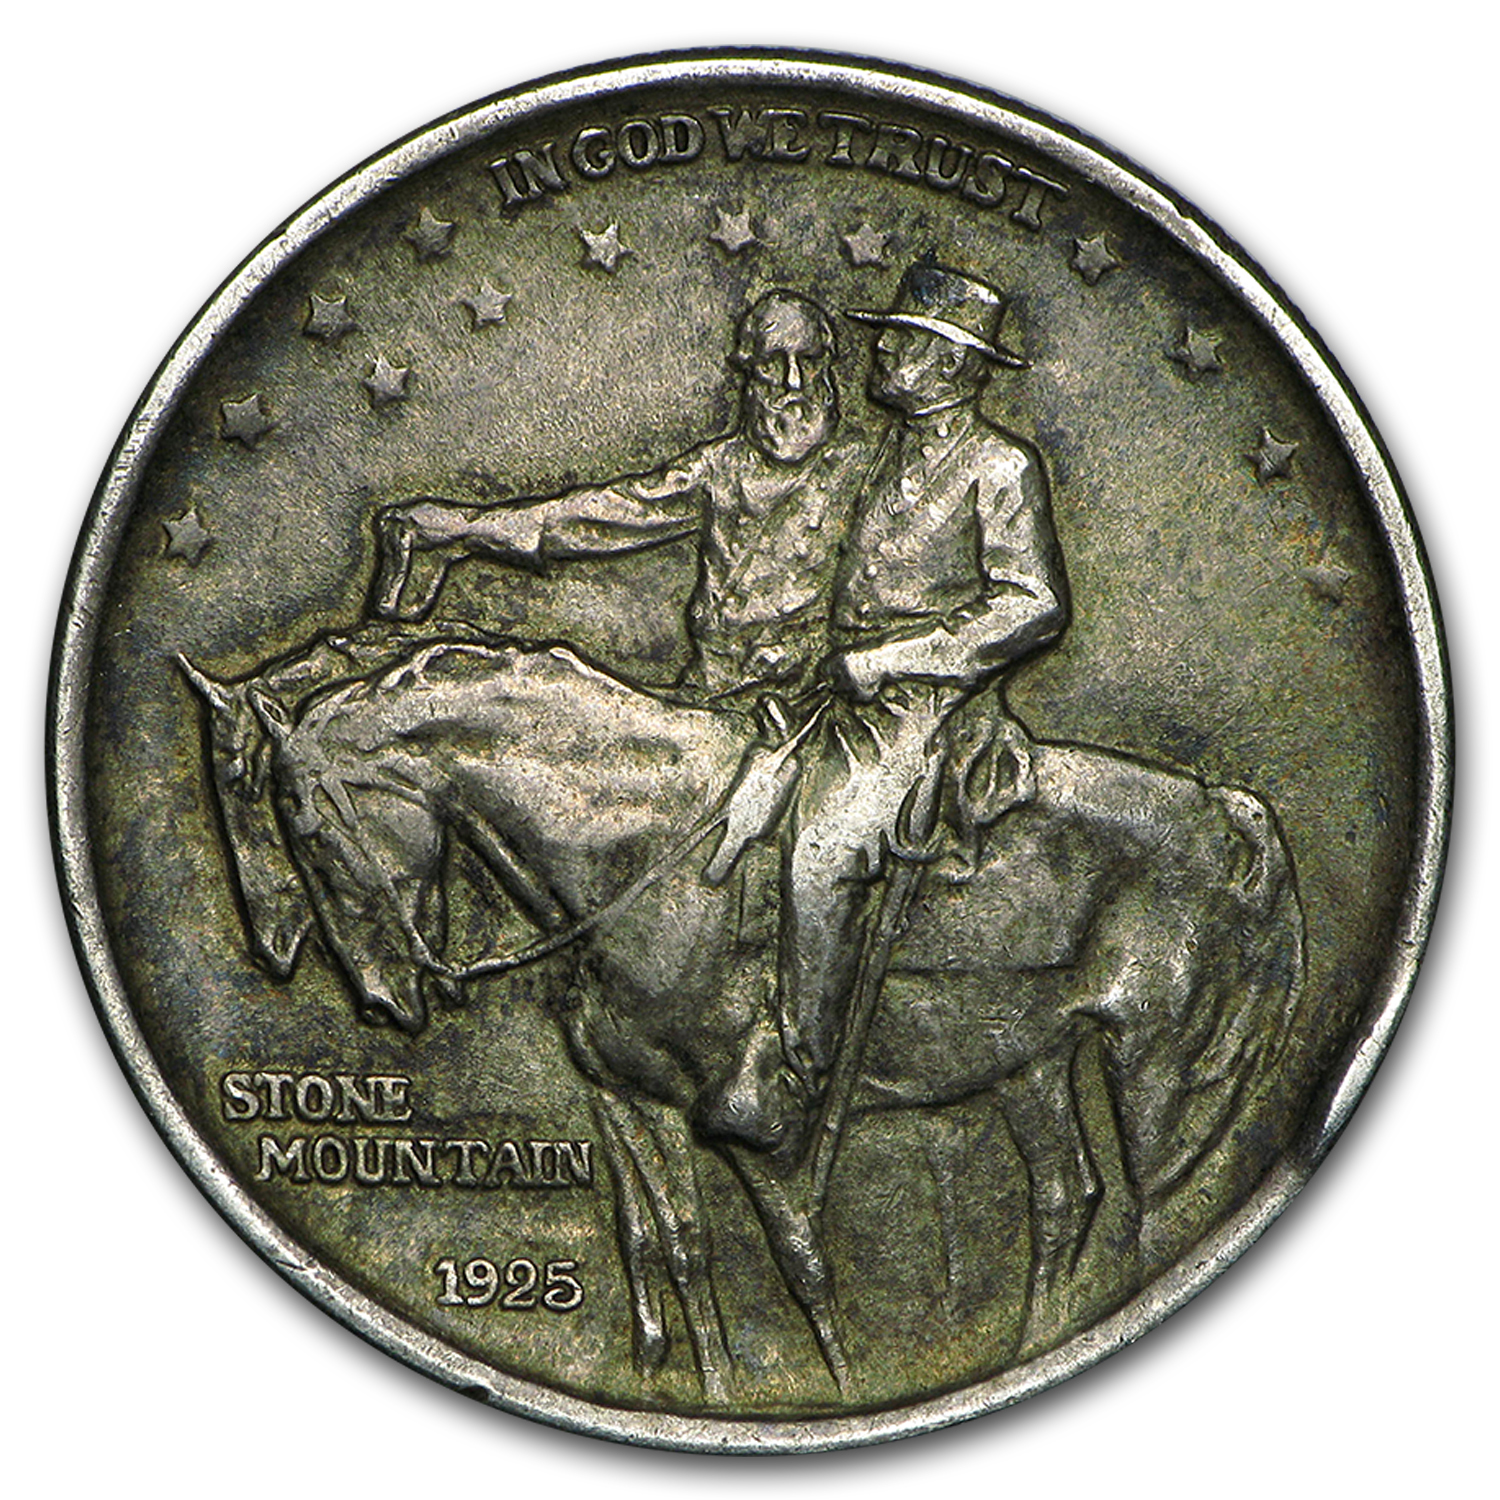 1925 Stone Mountain Memorial Commem Half Avg Circ